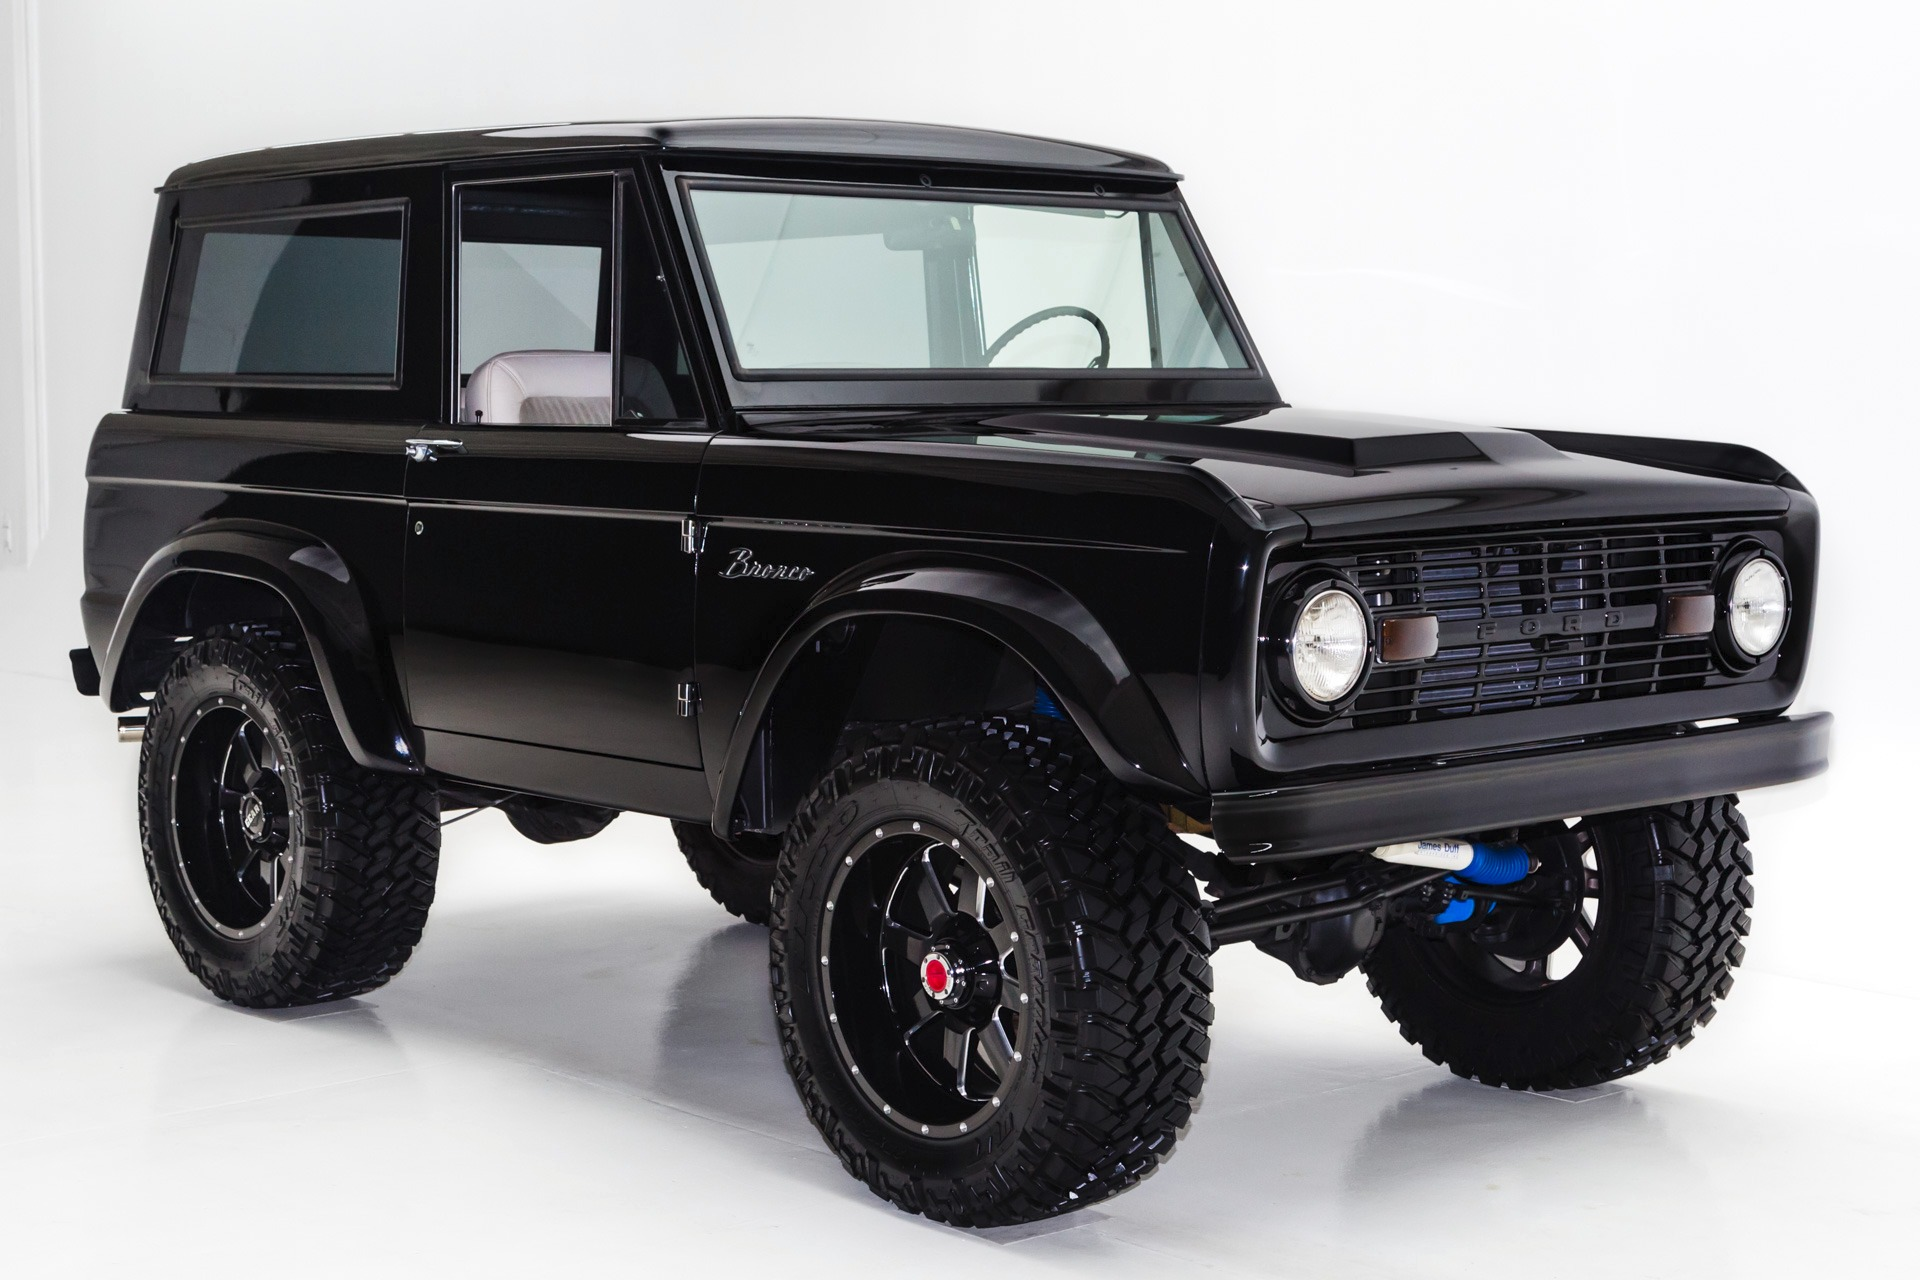 1977 Ford Bronco Jet Black Bronco, 302 Lifted - American Dream ...